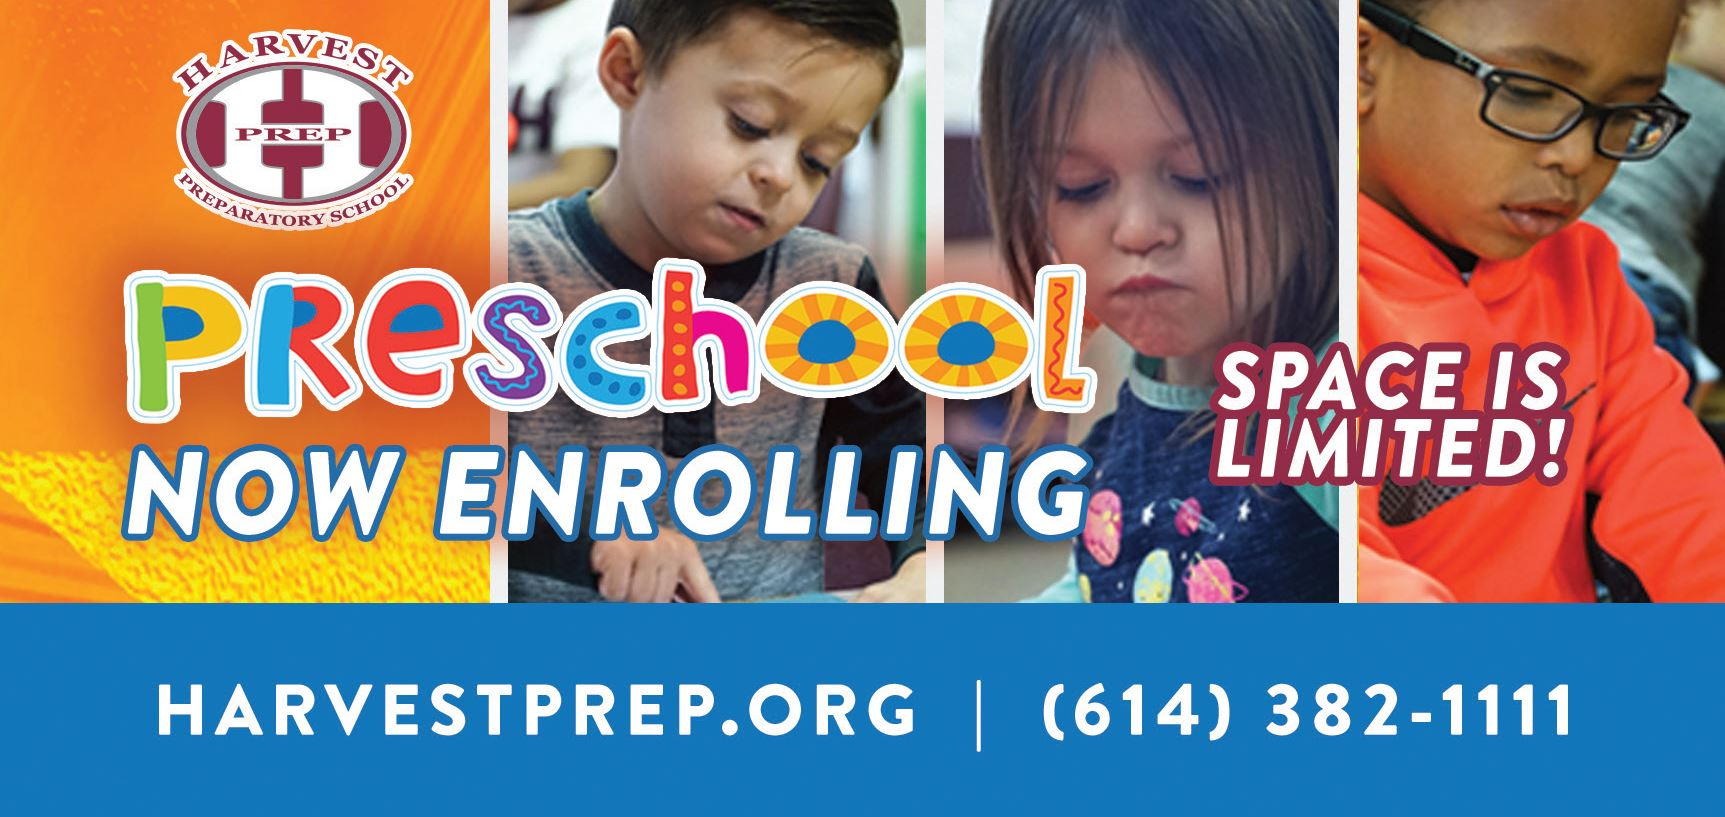 Harvest Preparatory School | Preschool Now Enrolling, Space is Limited! | harvestprep.org - 614-382-1111